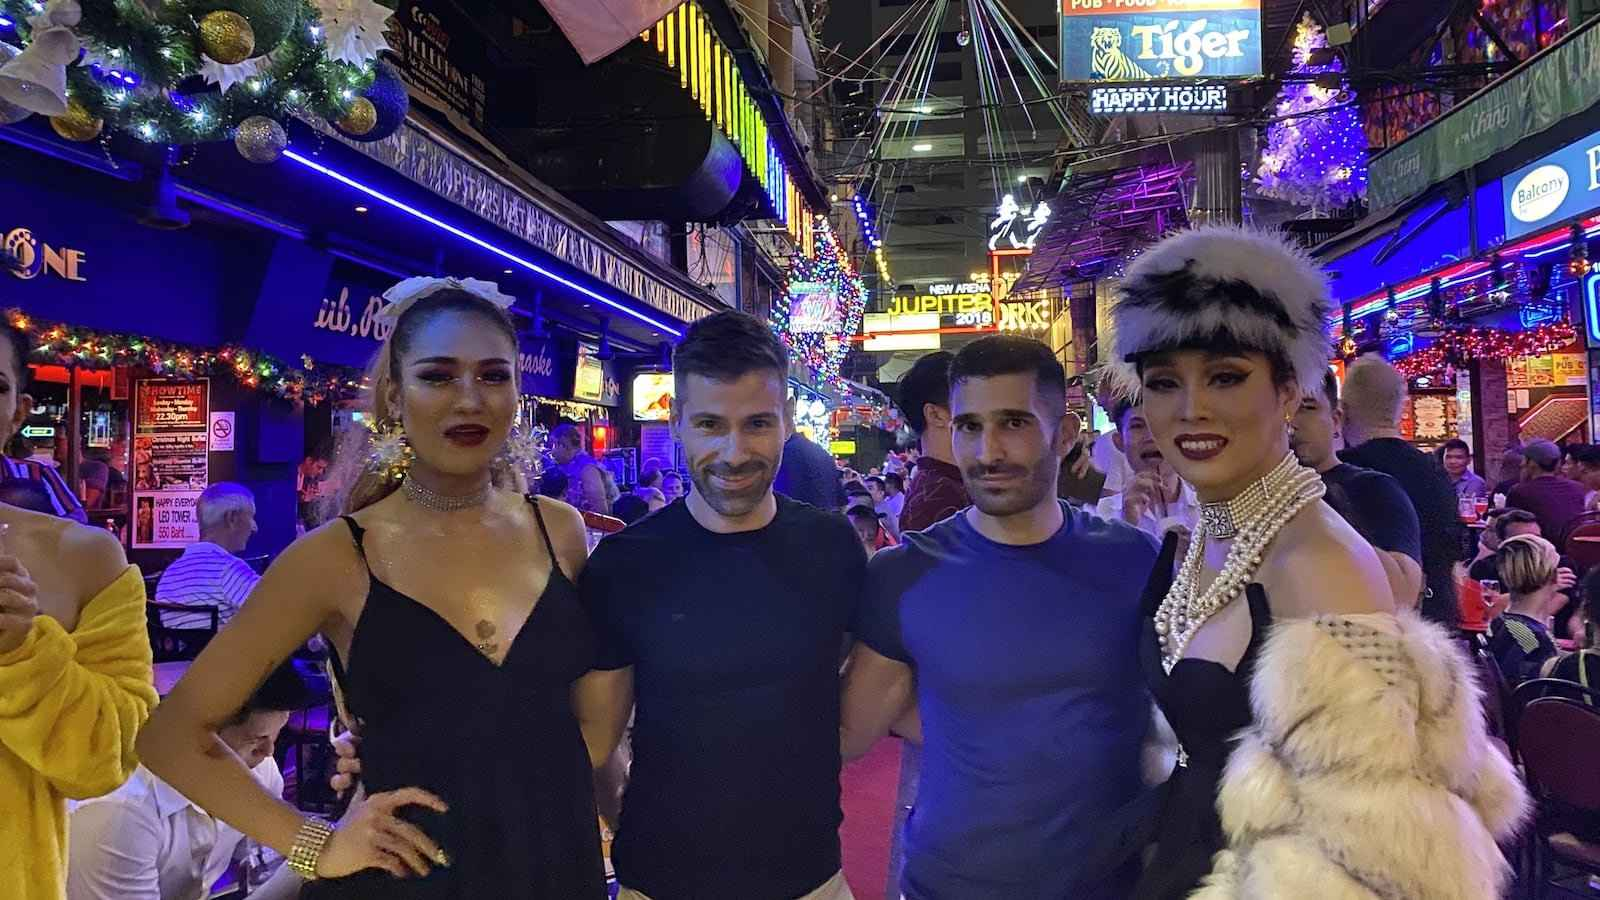 Bangkok's fabulous gay neighbourhood is located in Silom Soi 4 and 2, with lots of gay bars, clubs and restaurants